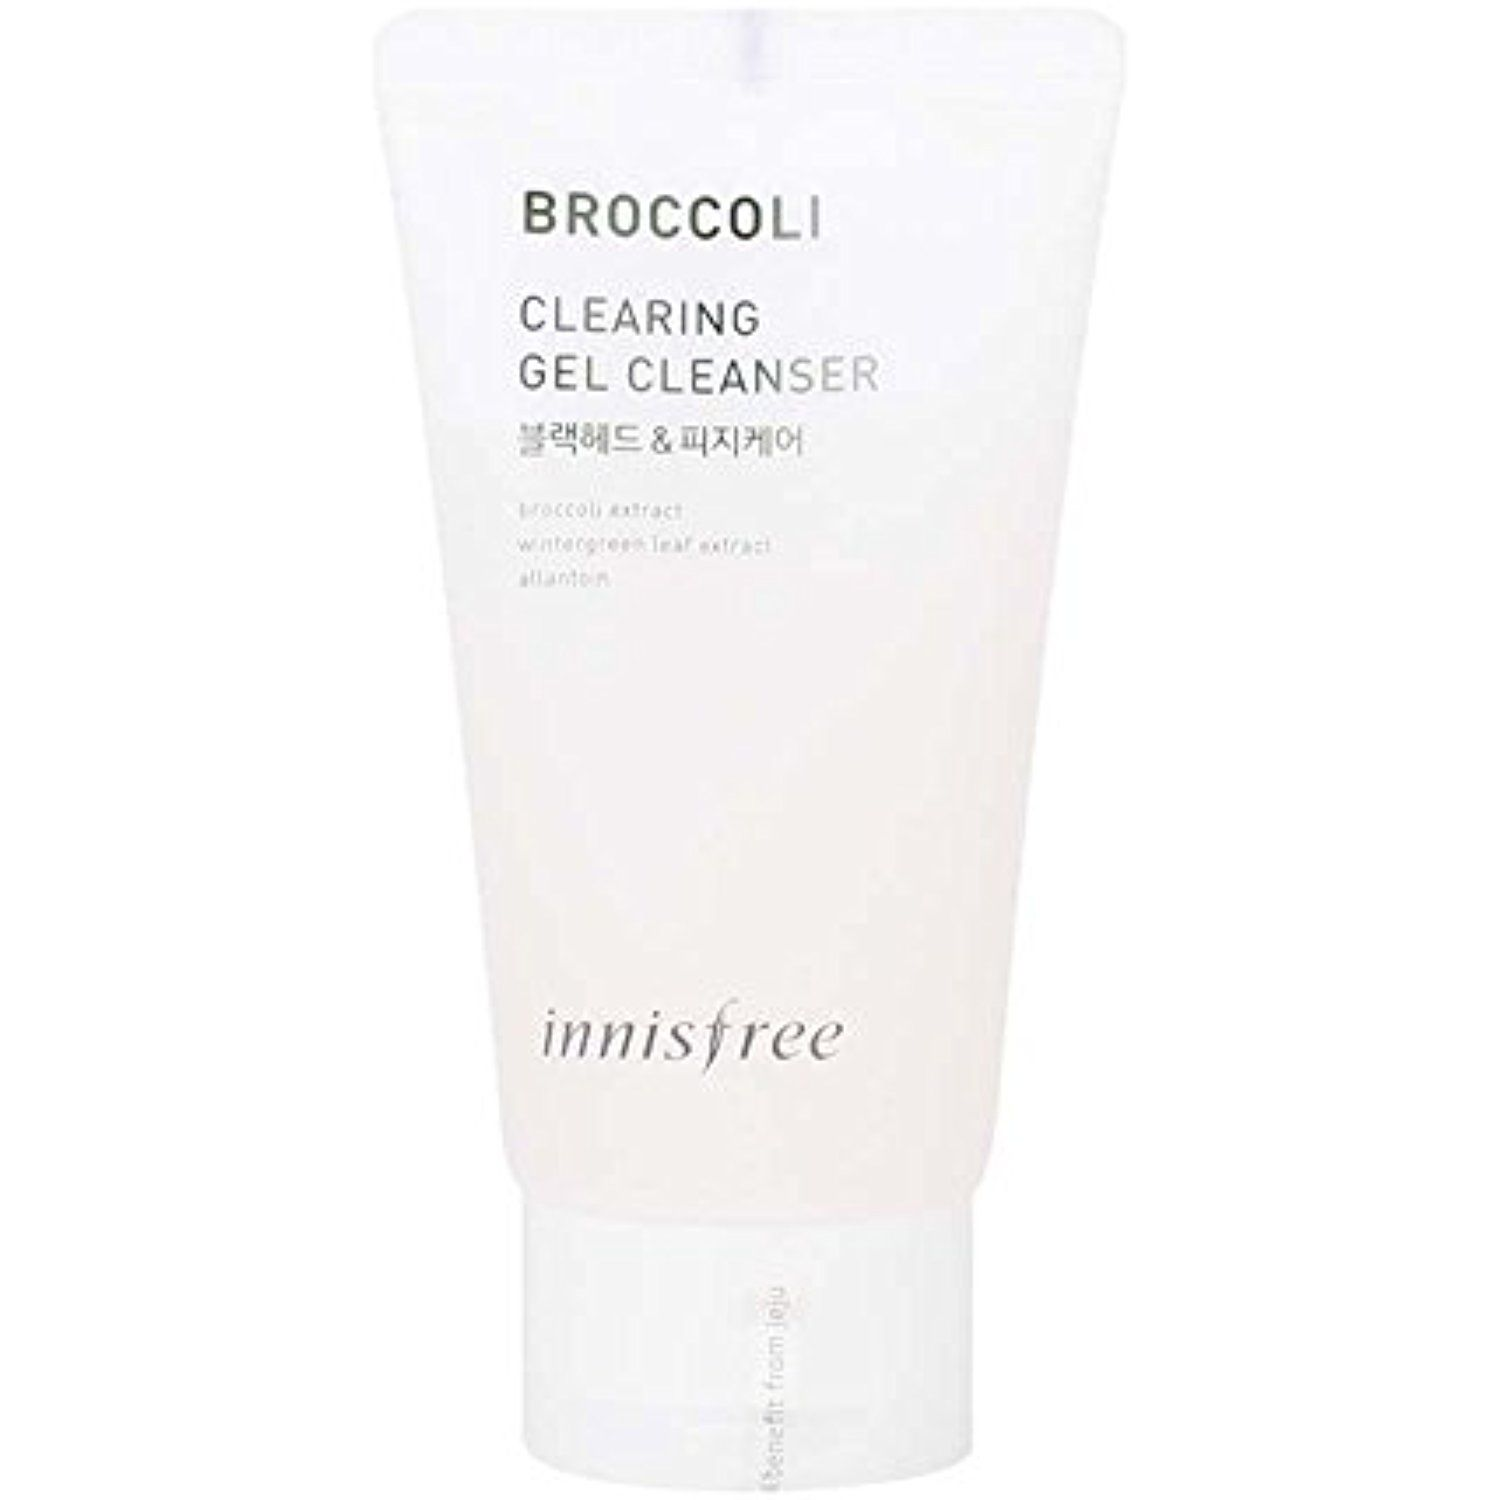 Innisfree Broccoli Clearing Gel Cleanser 100ml Read More Reviews Of The Product By Visiting The Link On The Image This Is A Gel Cleanser Cleanser Innisfree